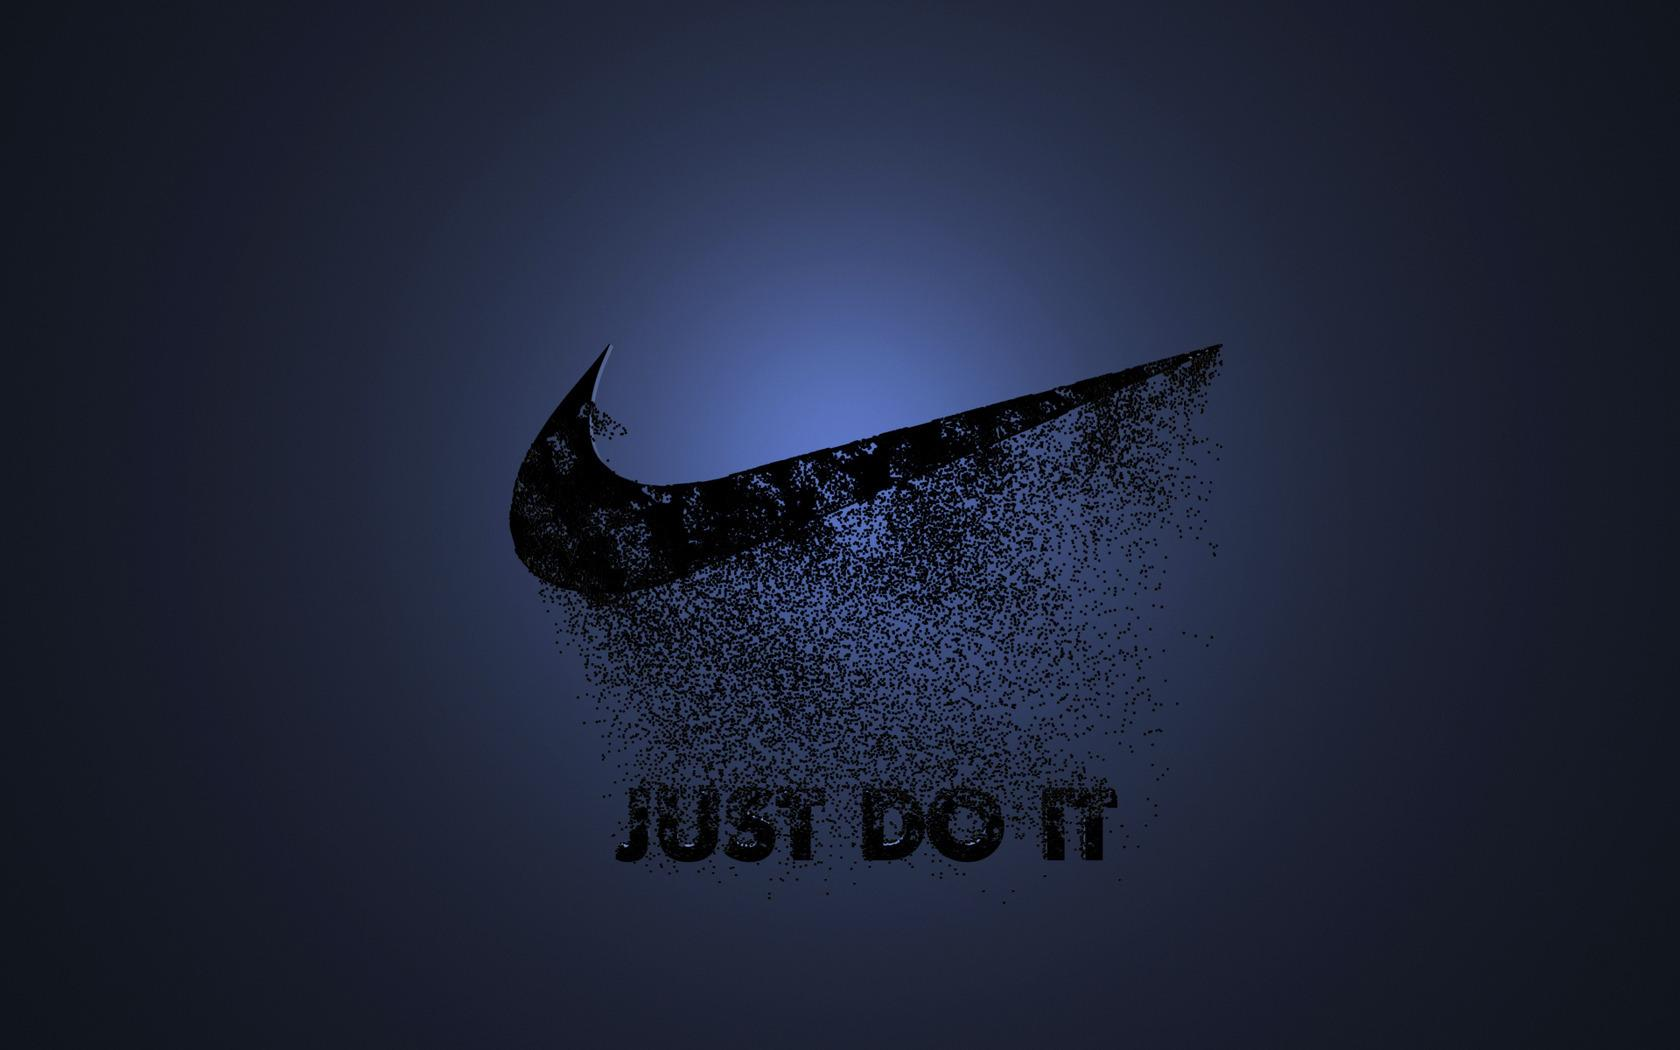 Just do it 1680x1050